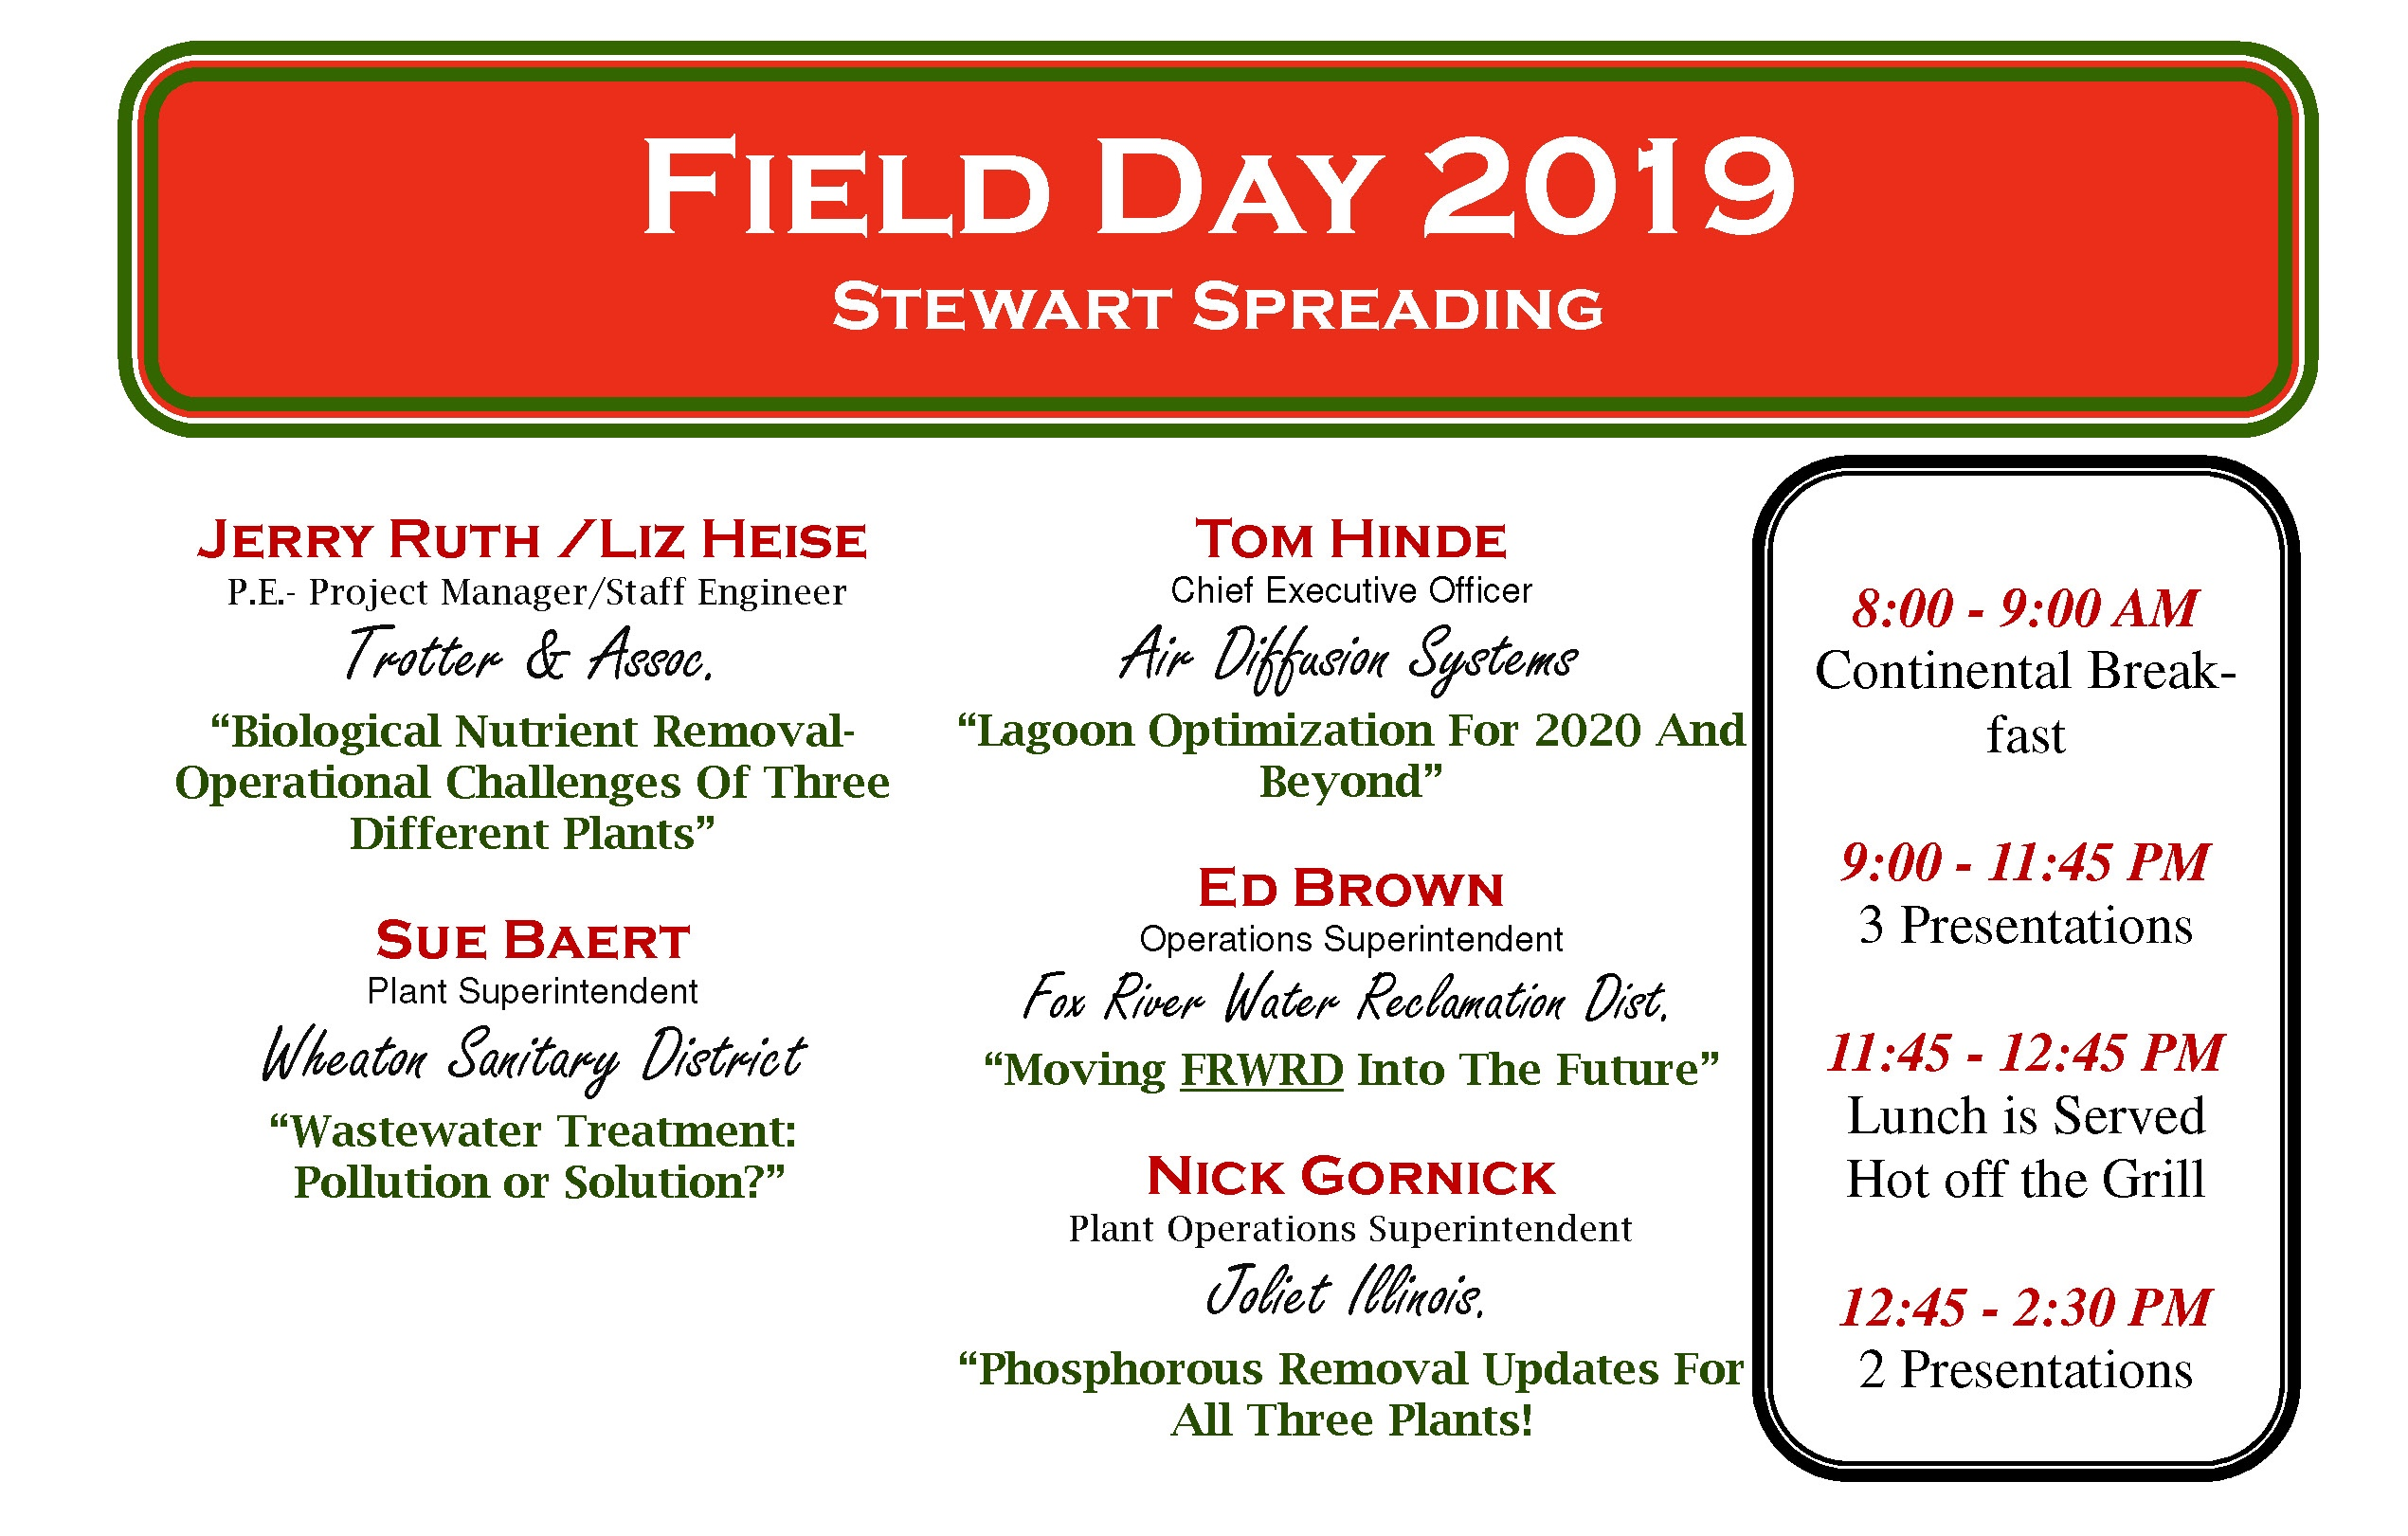 Field Day September 18th 2019